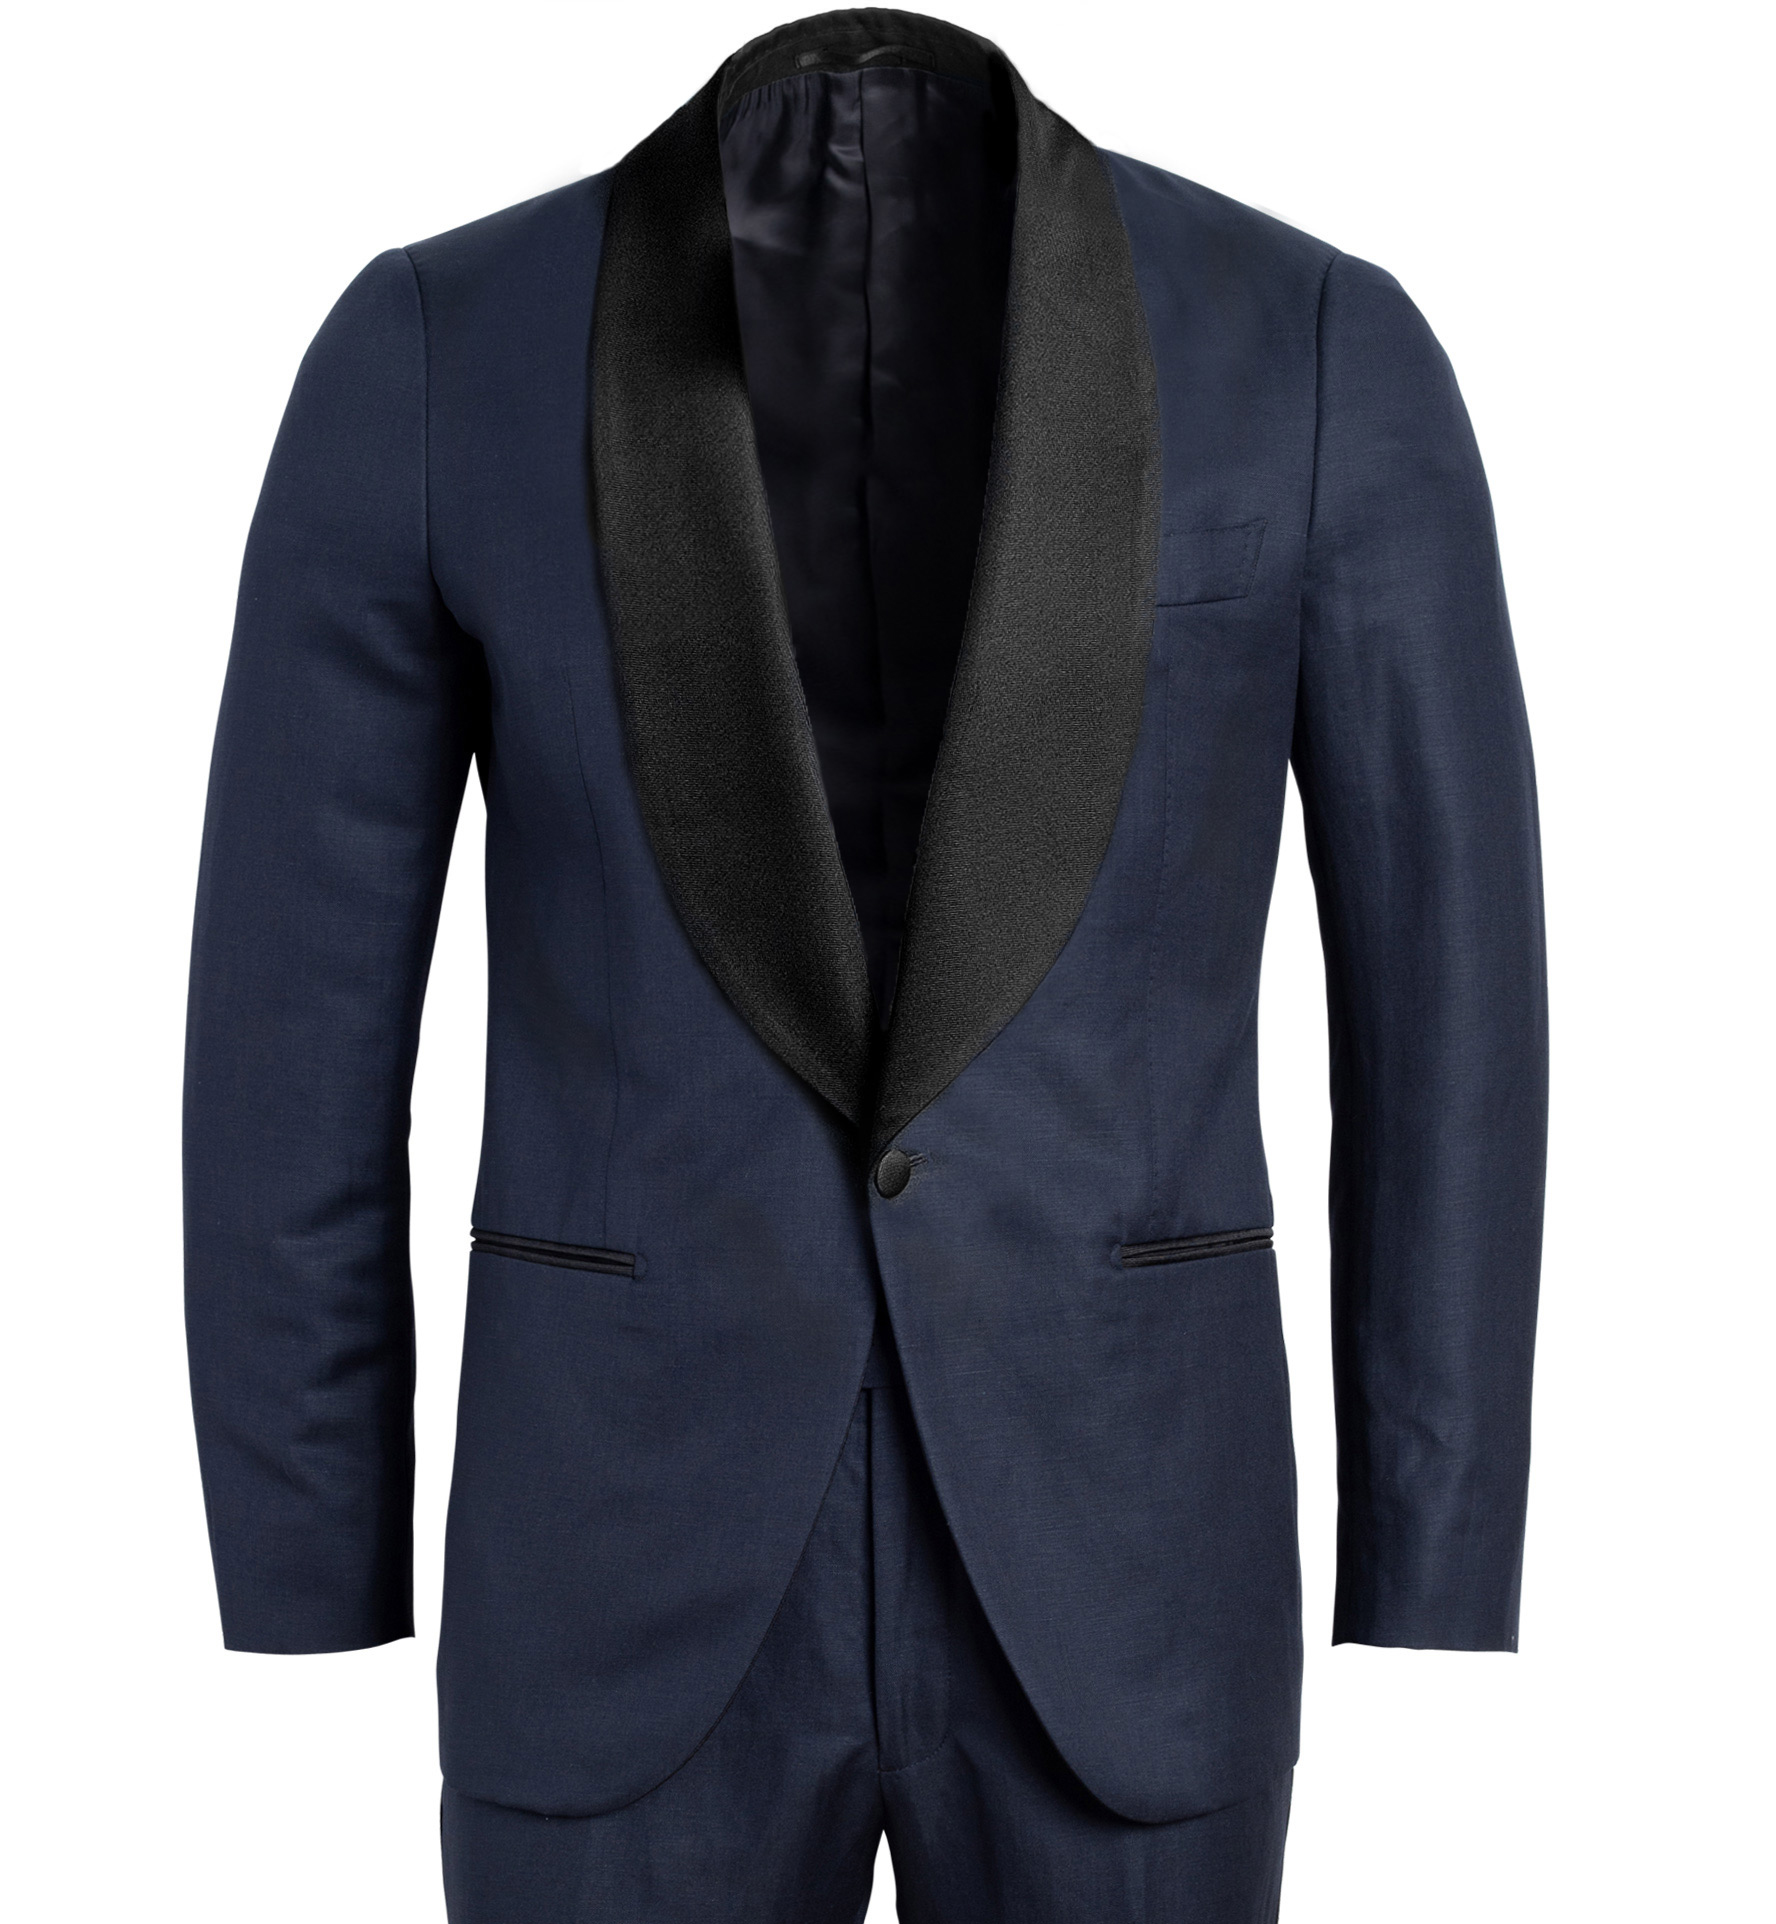 Zoom Image of Mayfair Navy Wool and Linen Tuxedo